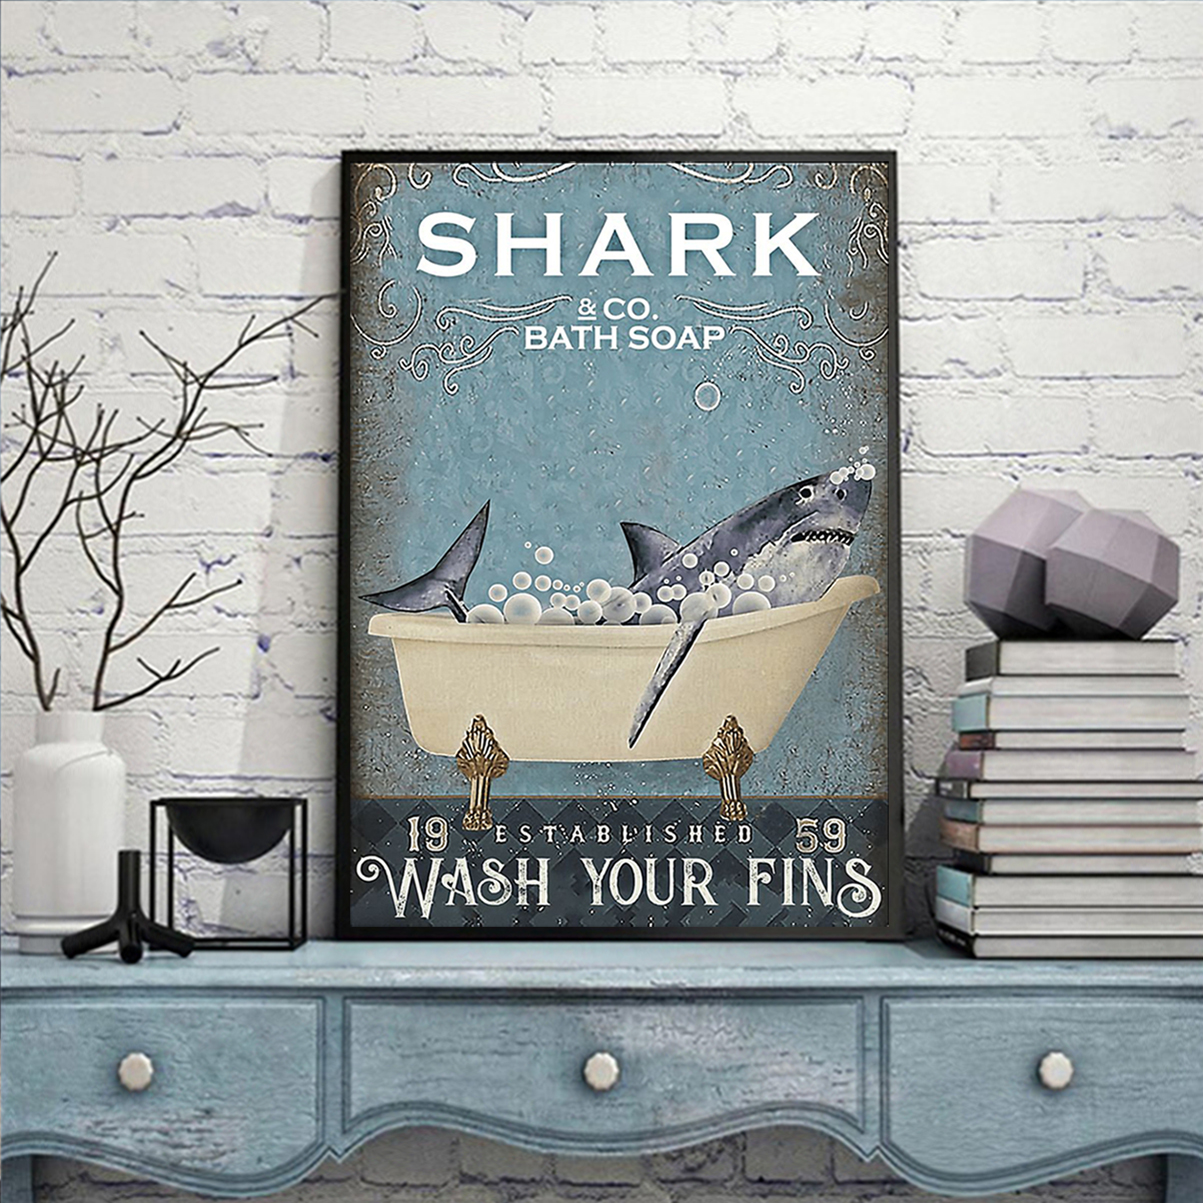 Shark and co bath soap wash your fins poster A2